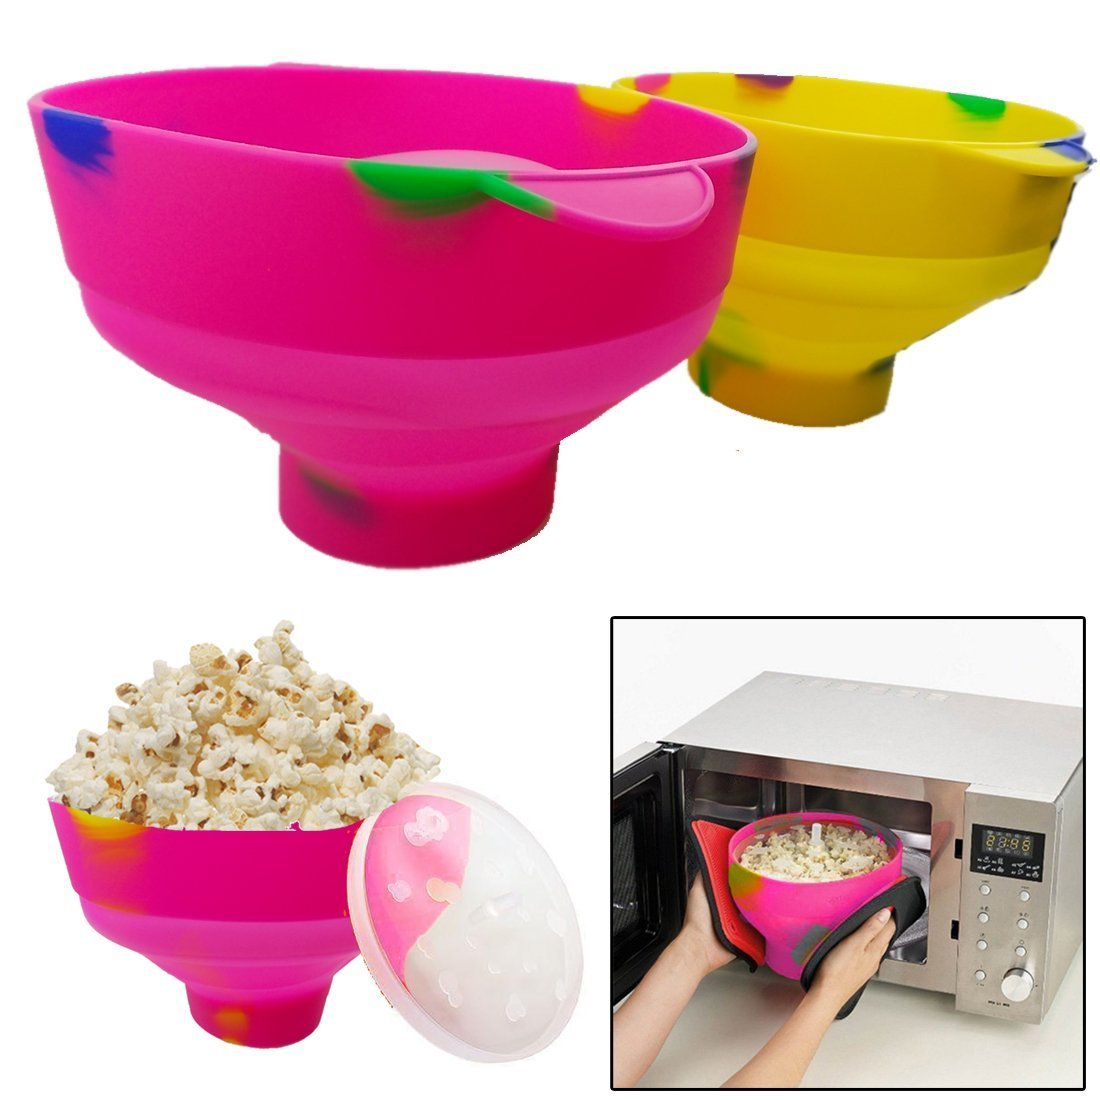 JJOnlineStore - Popcorn Maker Popcorn Microwave Bowl Popper Silicone Collapsible Family Homemade for Kids with Handle (Random Colours)